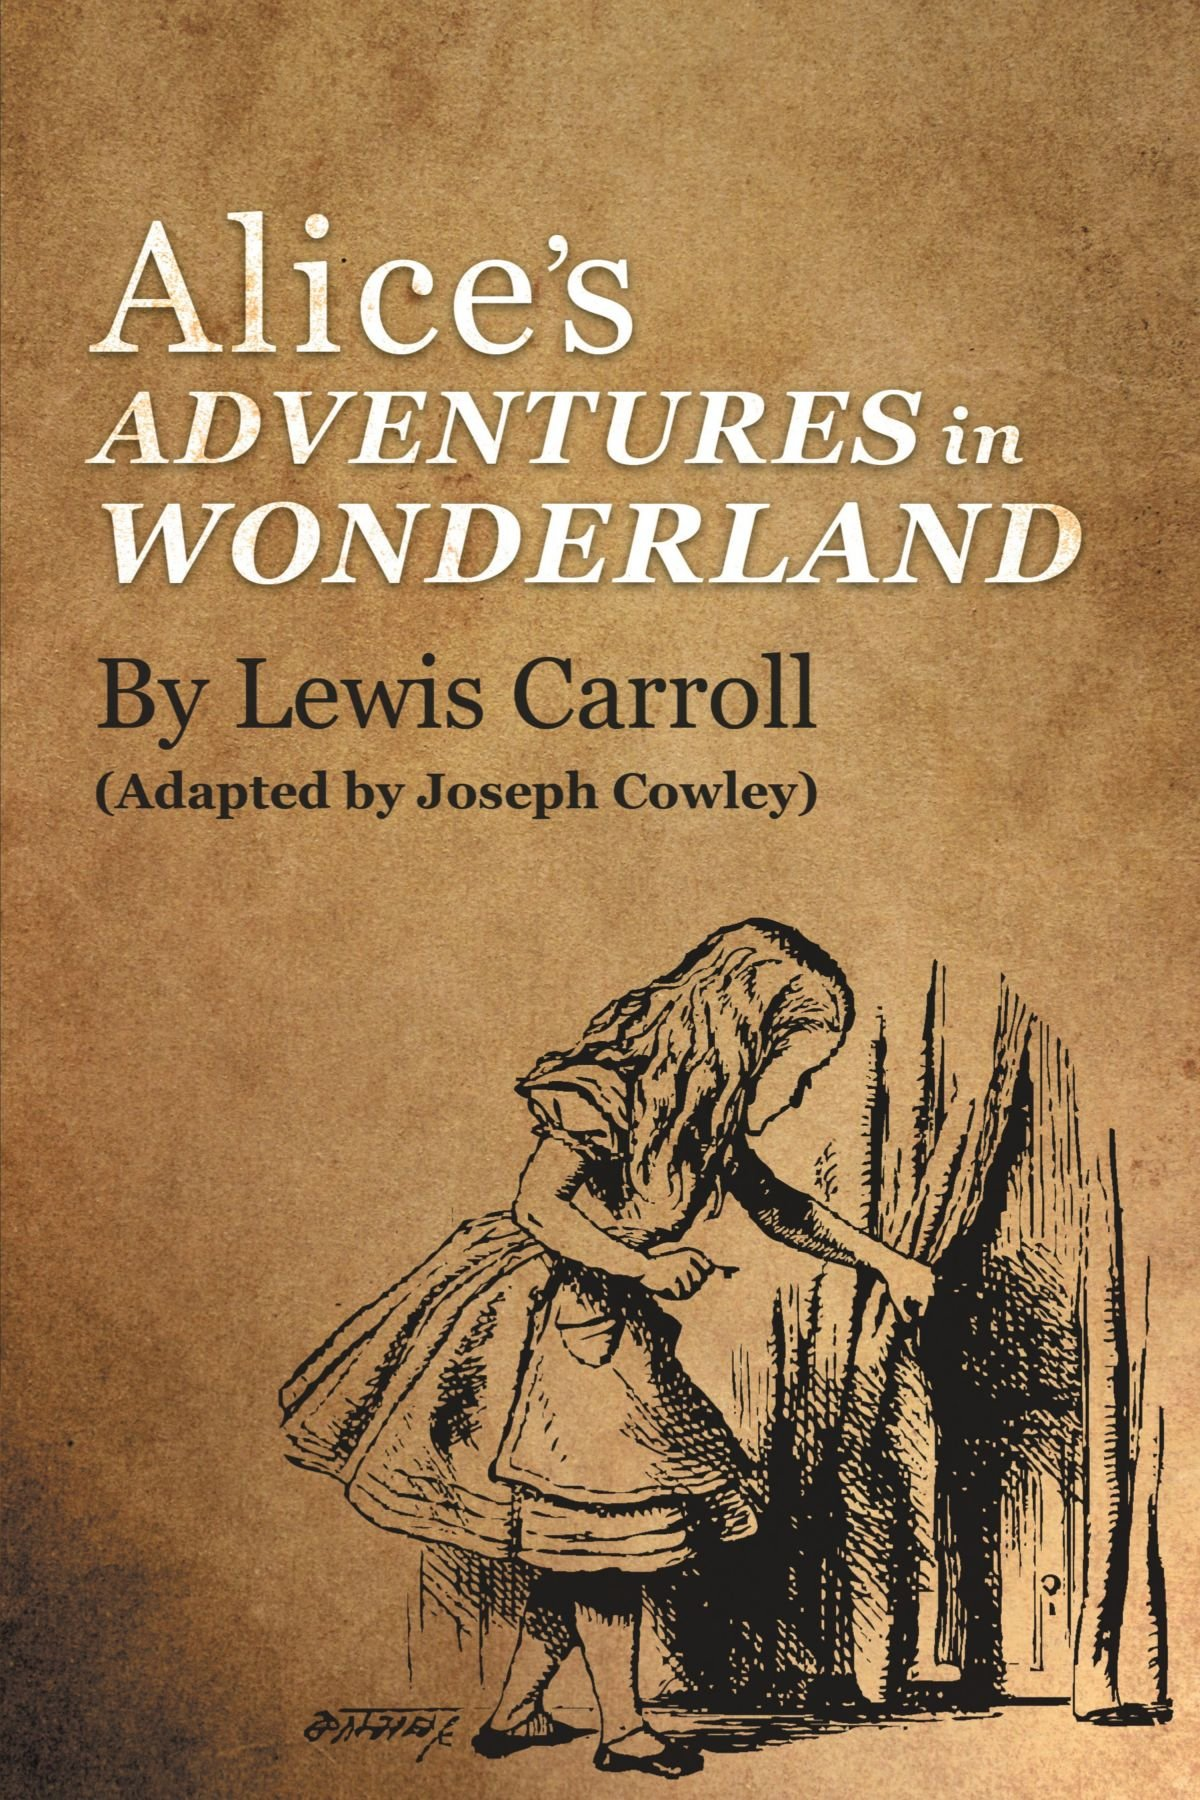 Download Alice's Adventures in Wonderland by Lewis Carroll: (Adapted by Joseph Cowley) PDF